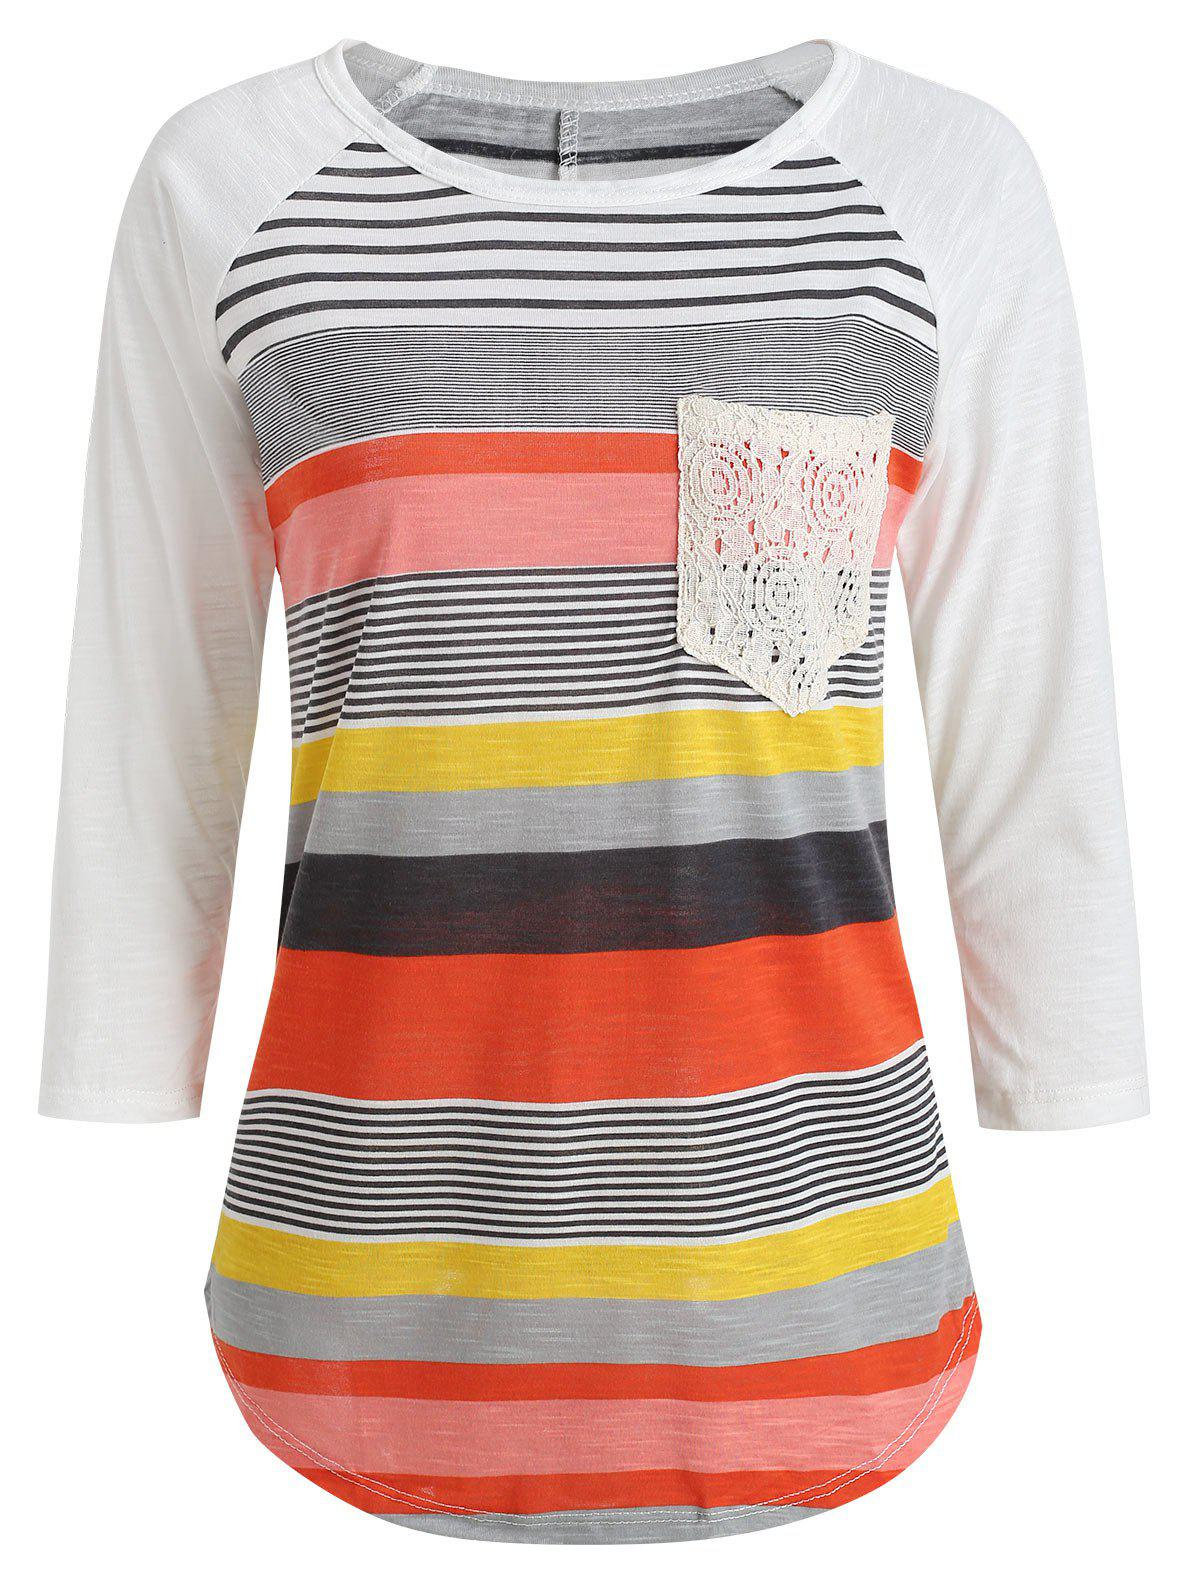 Shop Trendy Striped Lace Spliced 3/4 Sleeve Irregular T-Shirt For Women